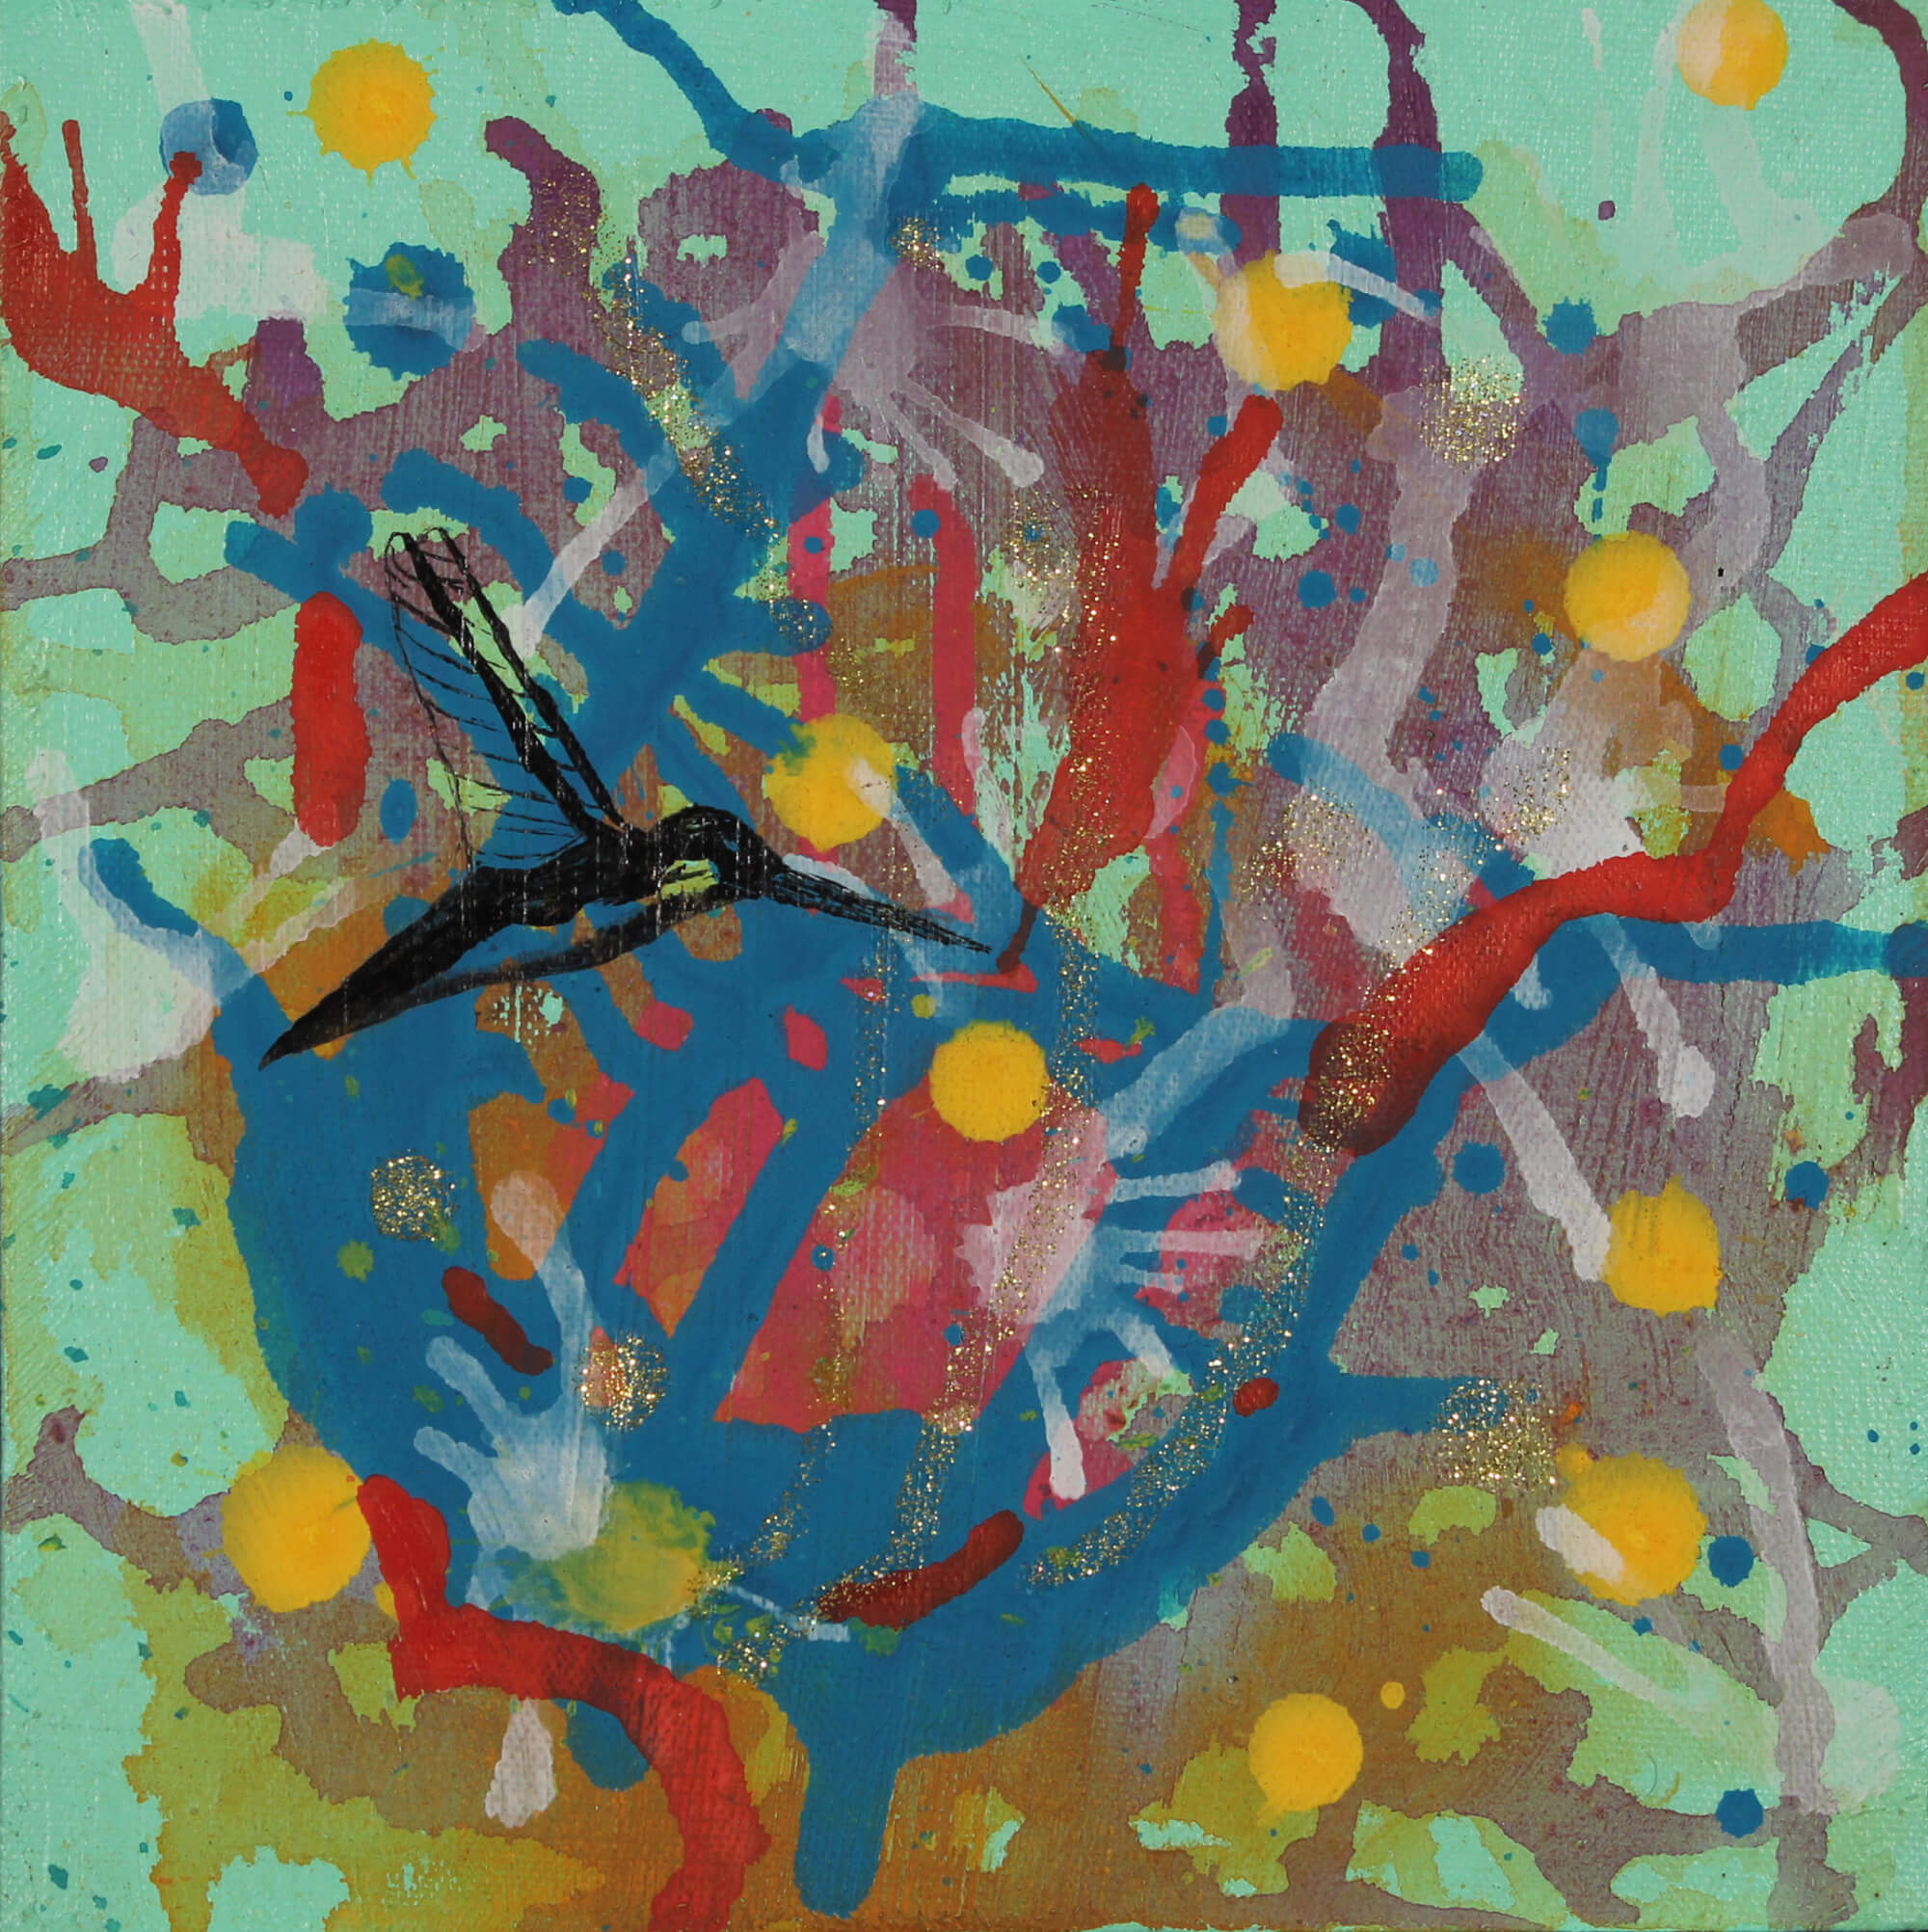 Acrylic painting of semiotic expressionism about humming bird and nectar by Kevo